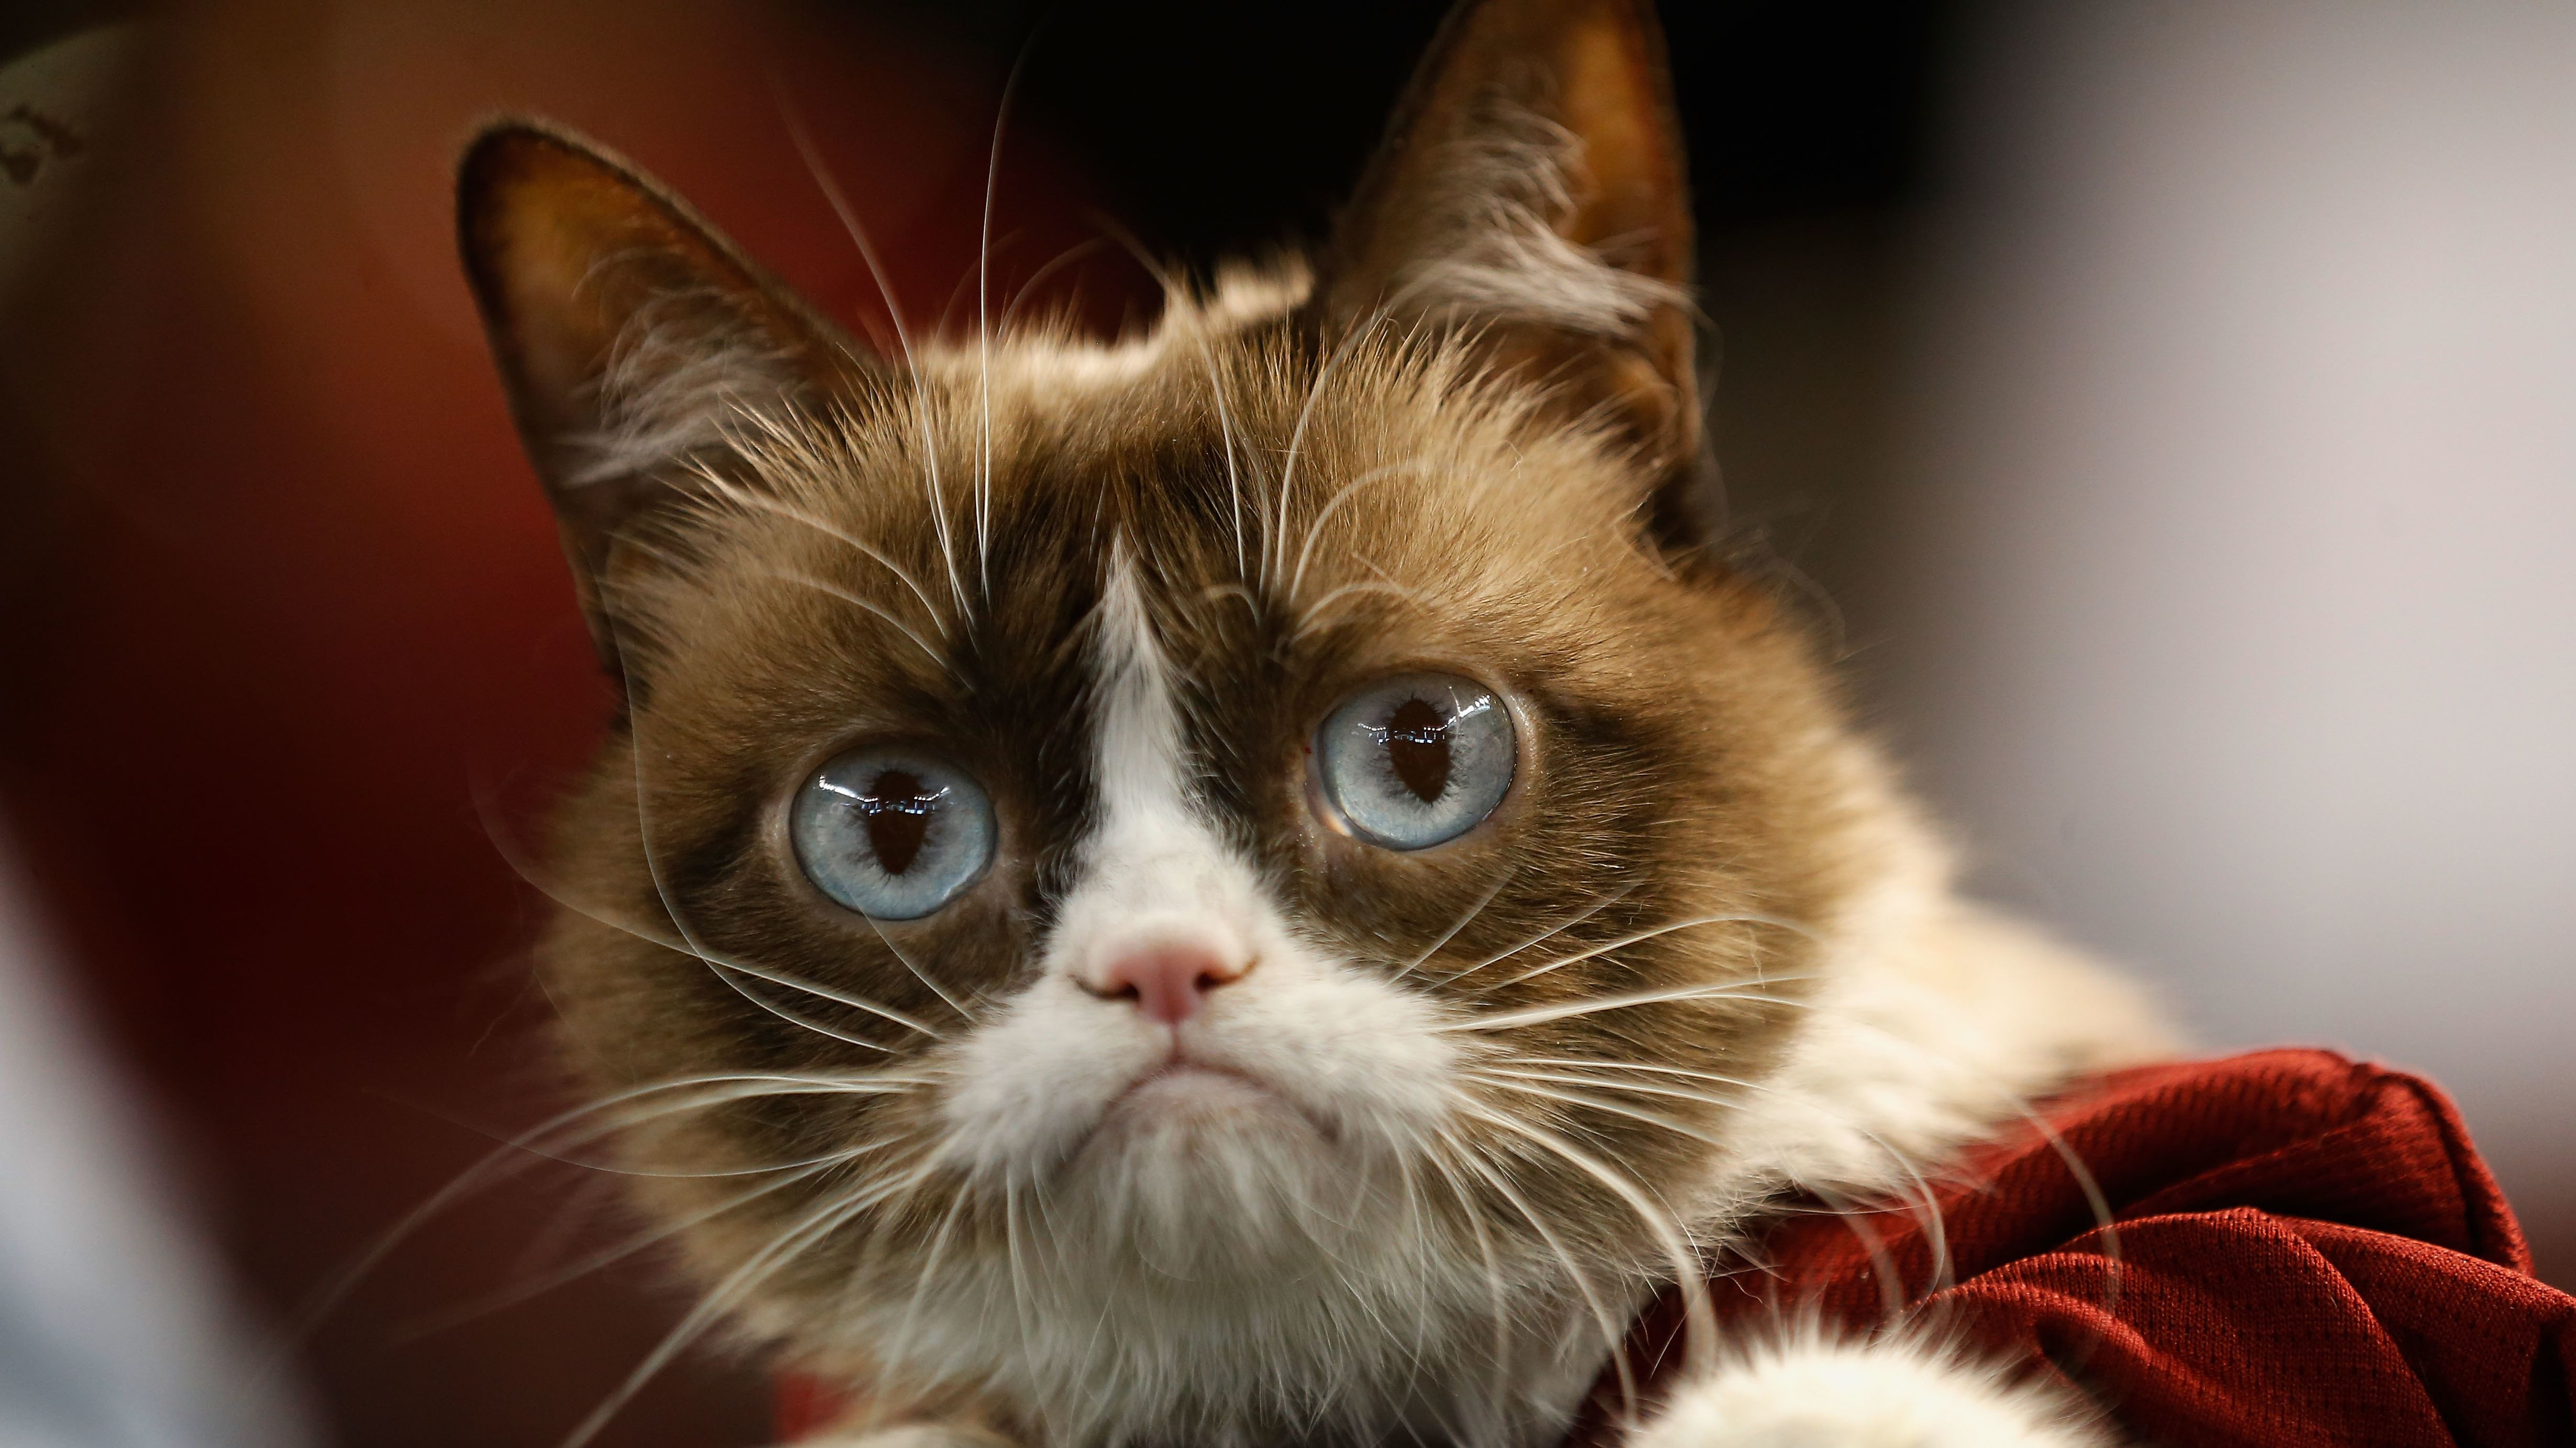 15 Facts About Grumpy Cat